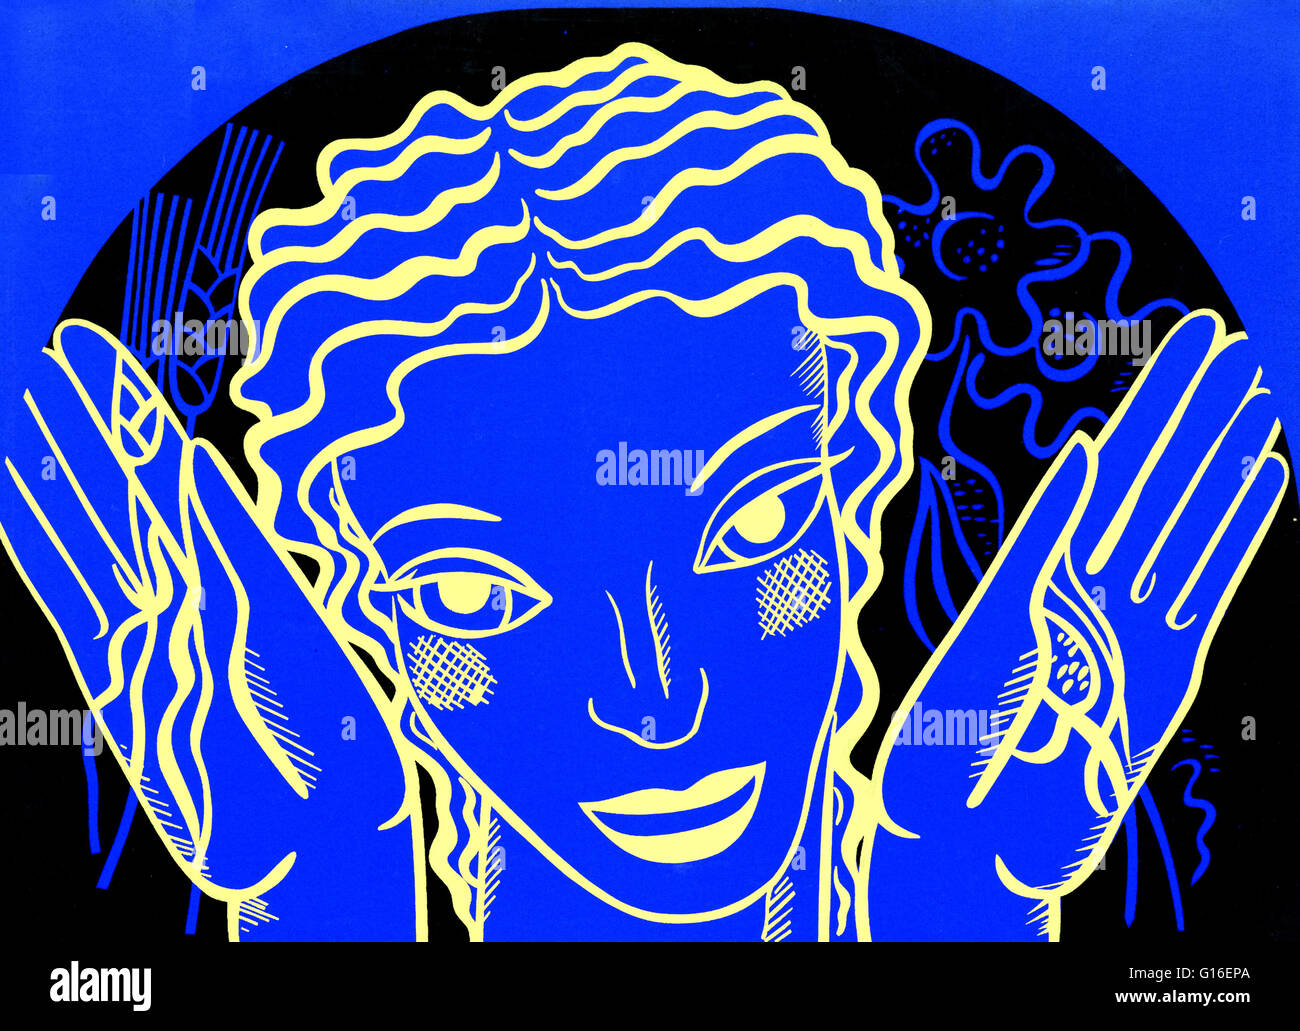 WPA poster design on blue background showing the head and hands of a woman holding flowers and wheat. The Federal - Stock Image